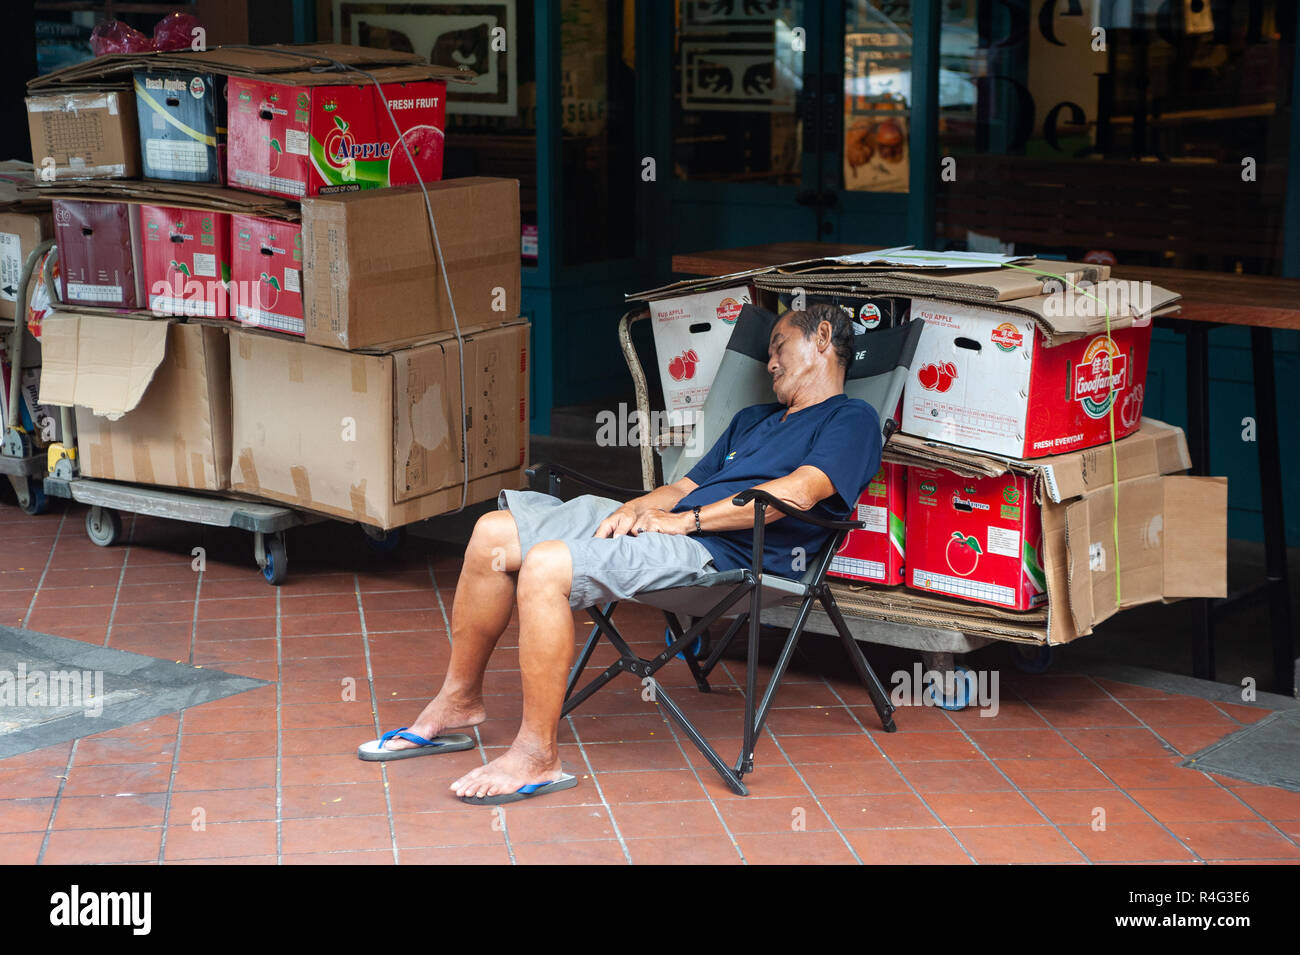 29.07.2018, Singapore, Republic of Singapore, Asia - An elderly man sits on a chair in Singapore's Chinatown district and takes a nap. - Stock Image